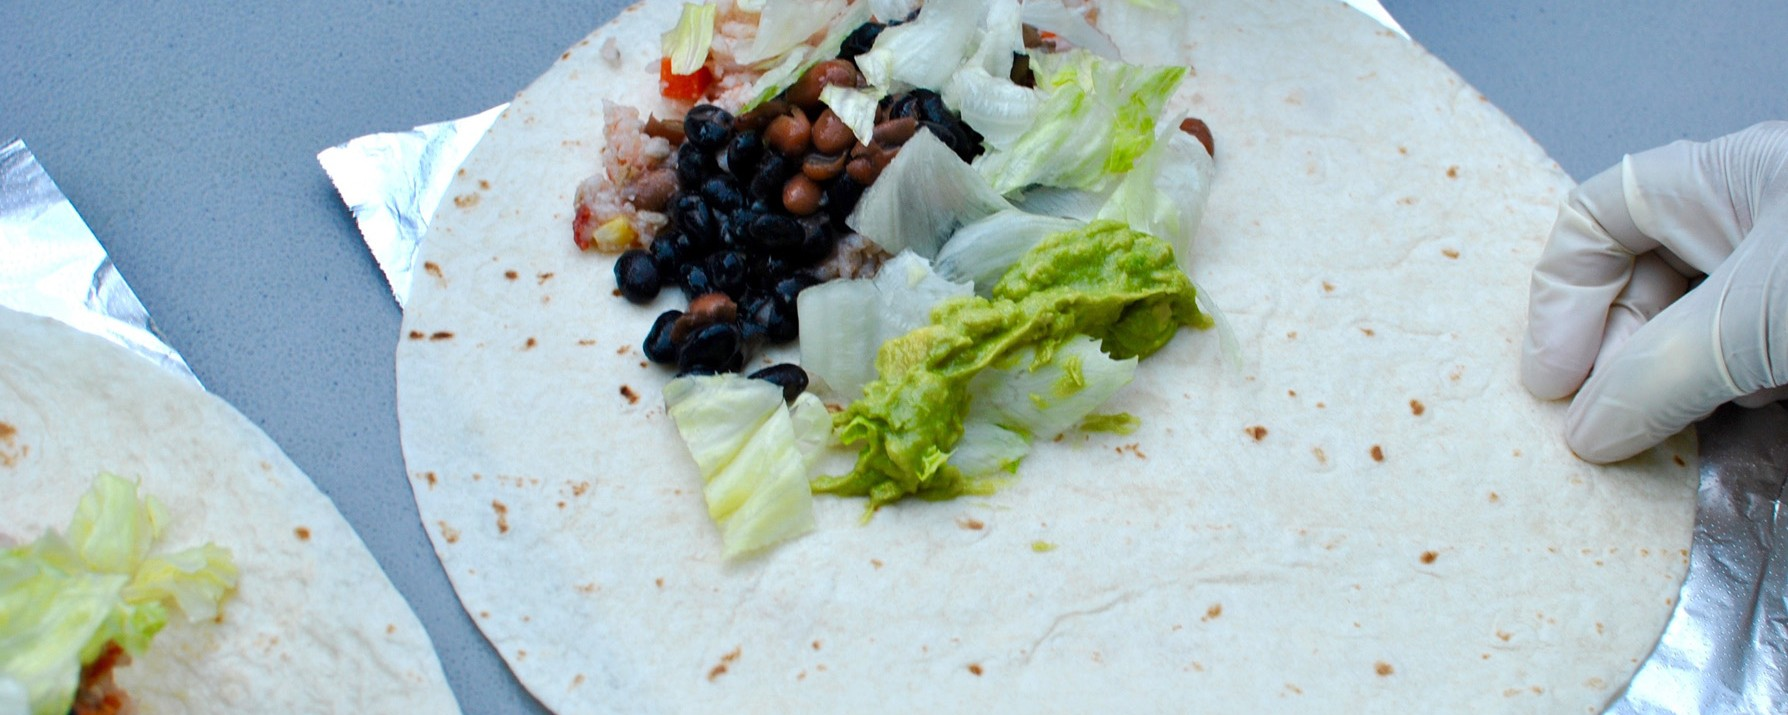 How Vegan Burritos Are Stopping Hunger in LA's Homeless Communities